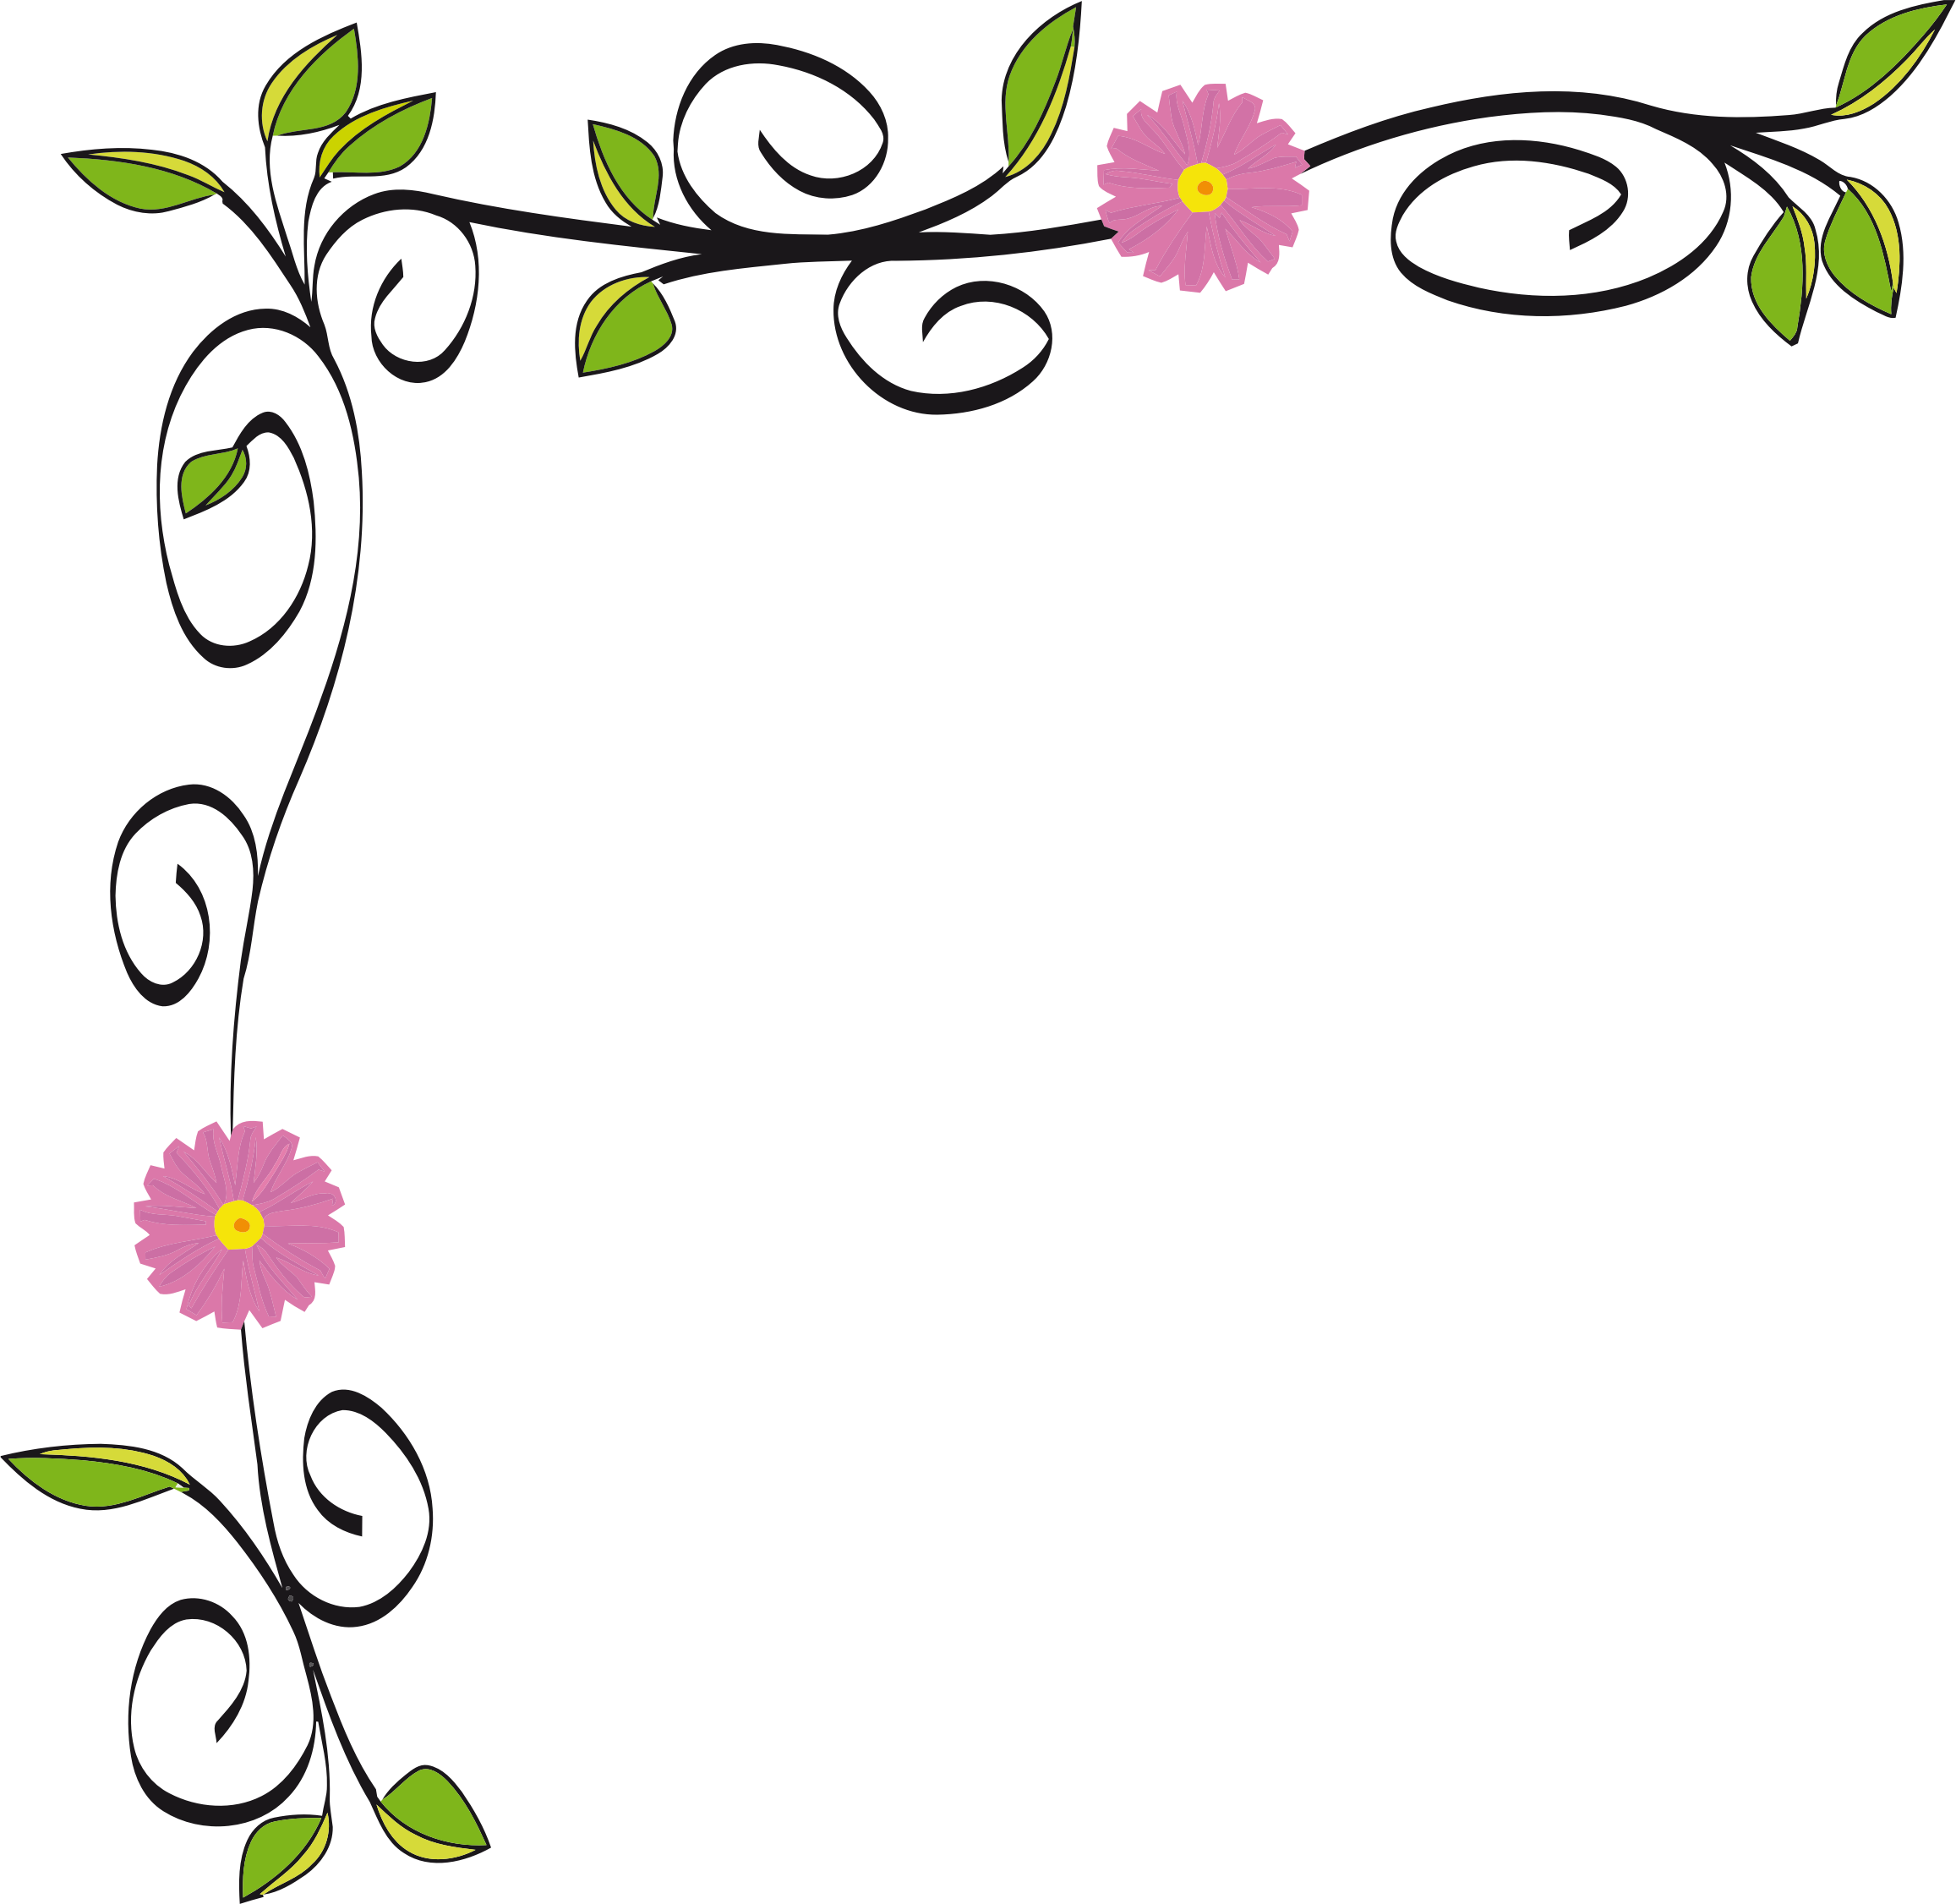 graphic free stock Floral Border Vectorized by GDJ